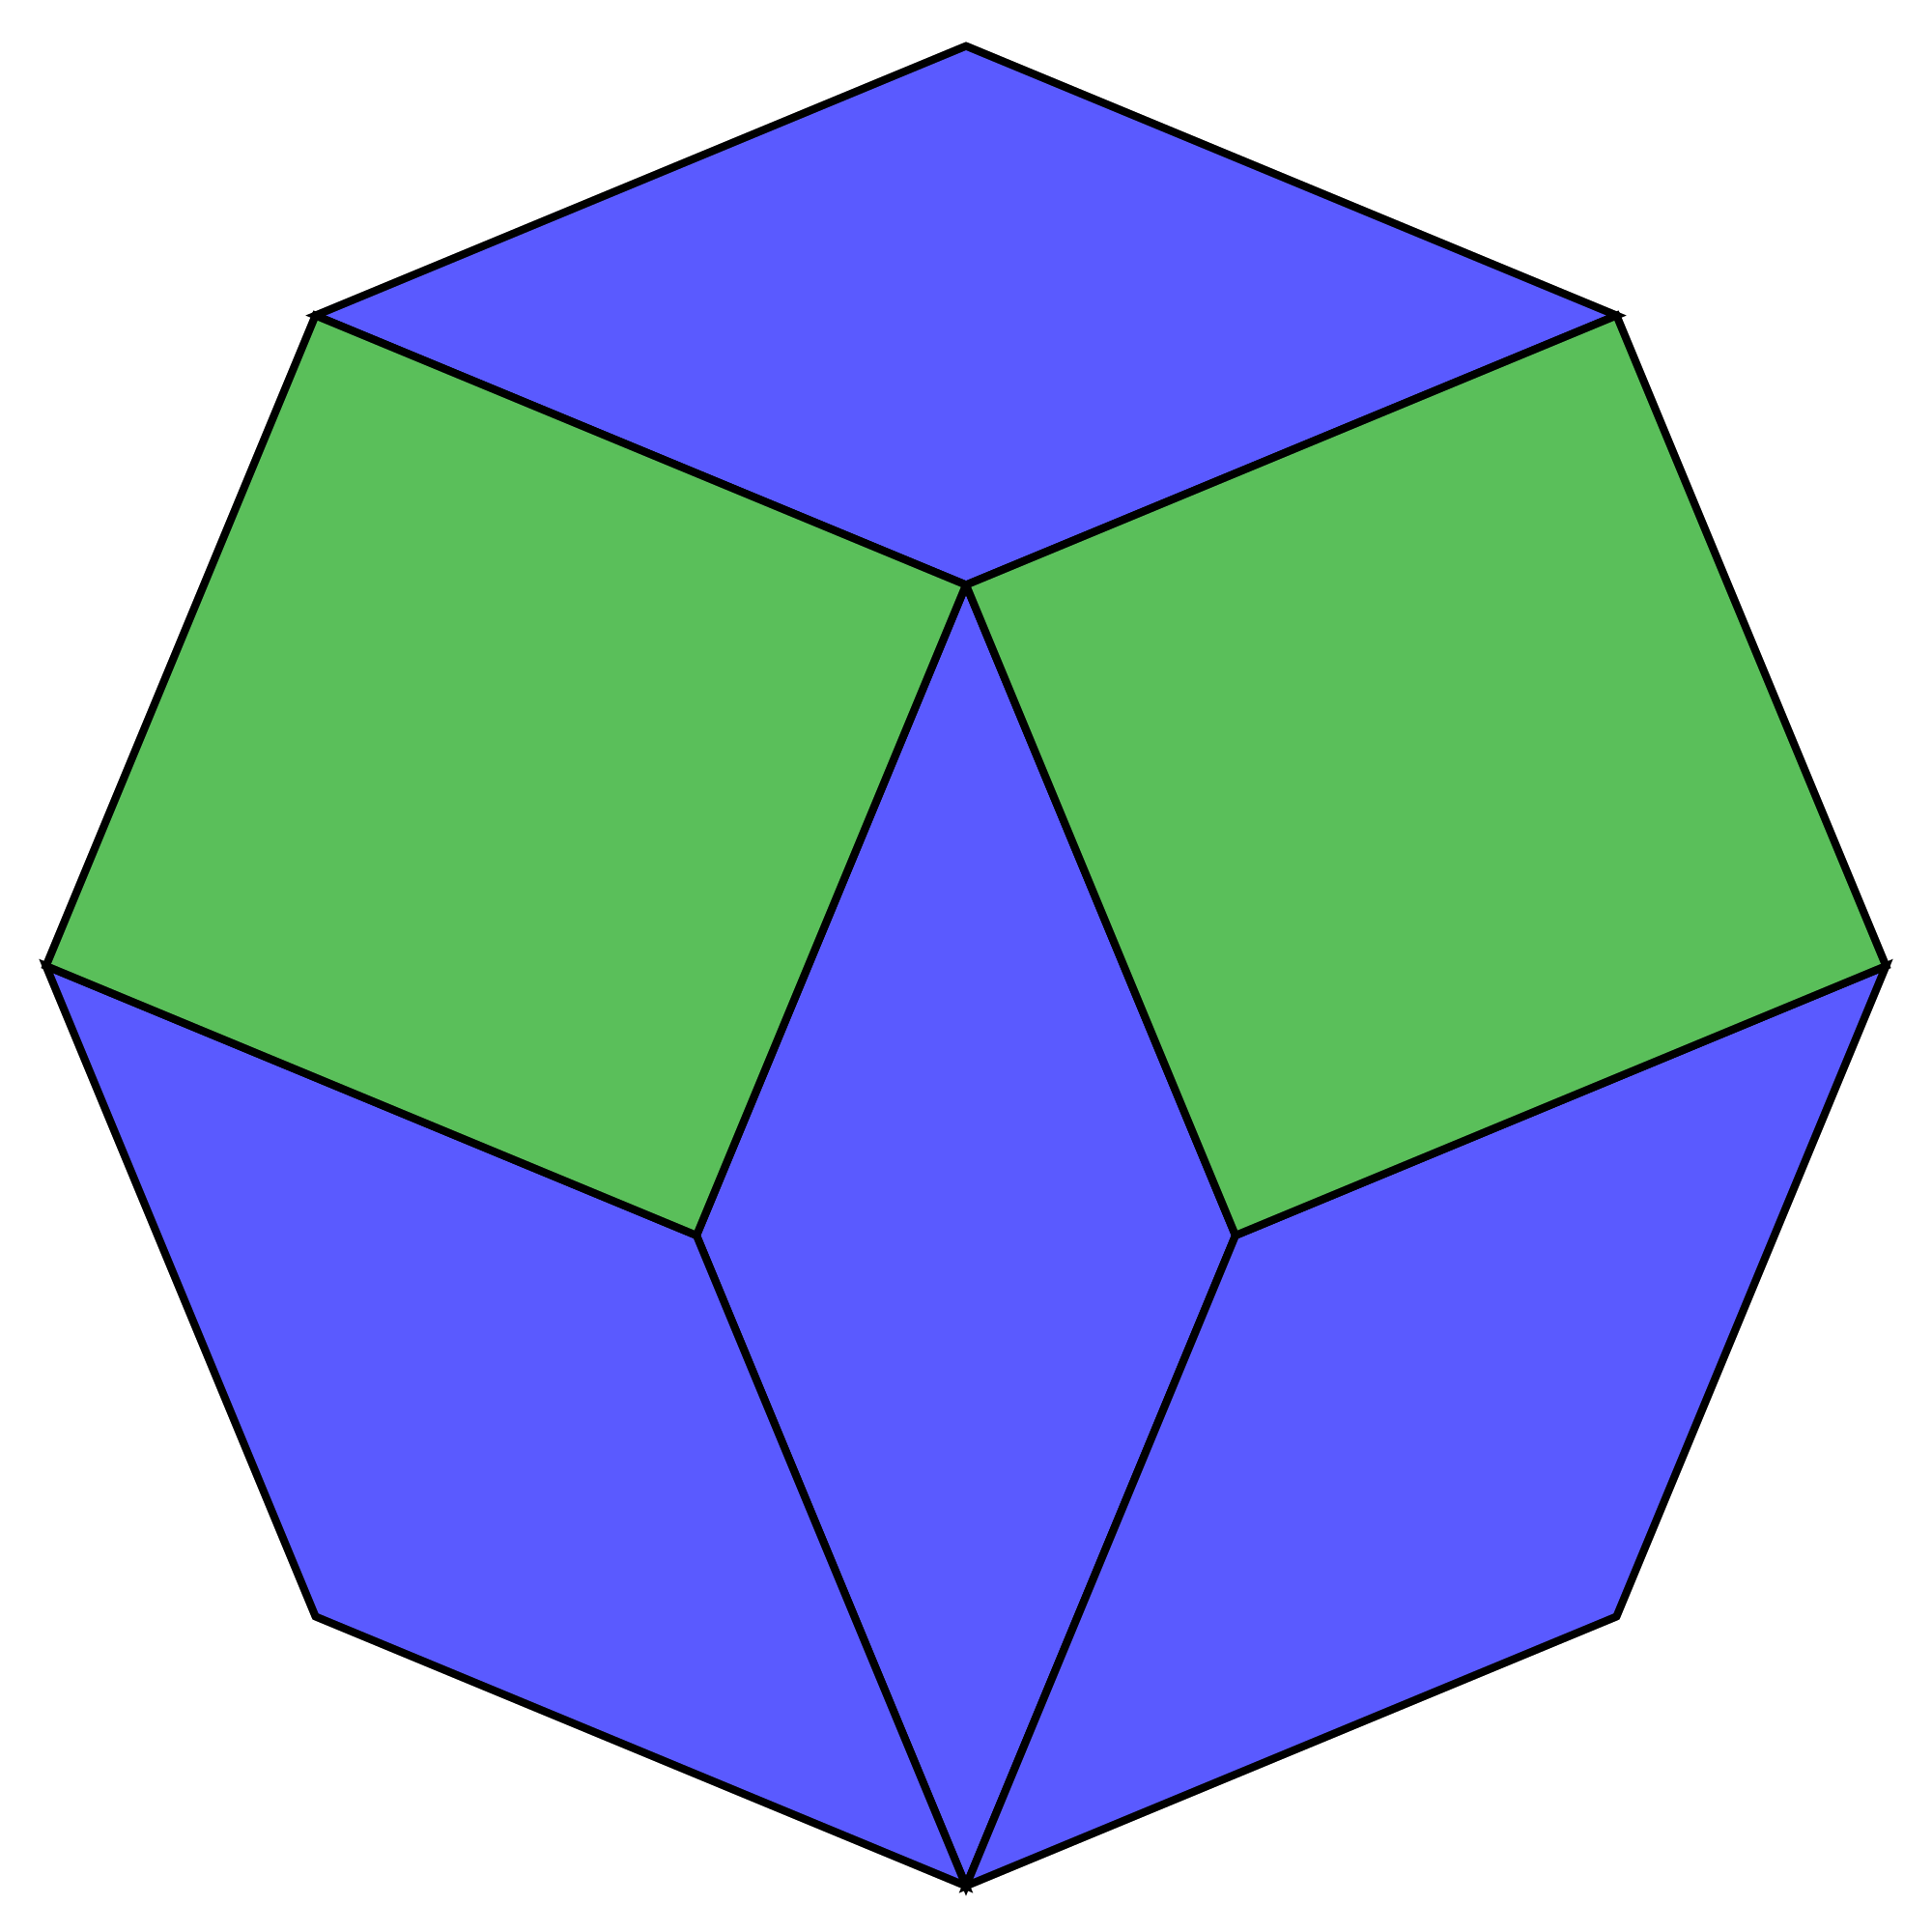 Purple clipart octagon. File dissected svg wikimedia